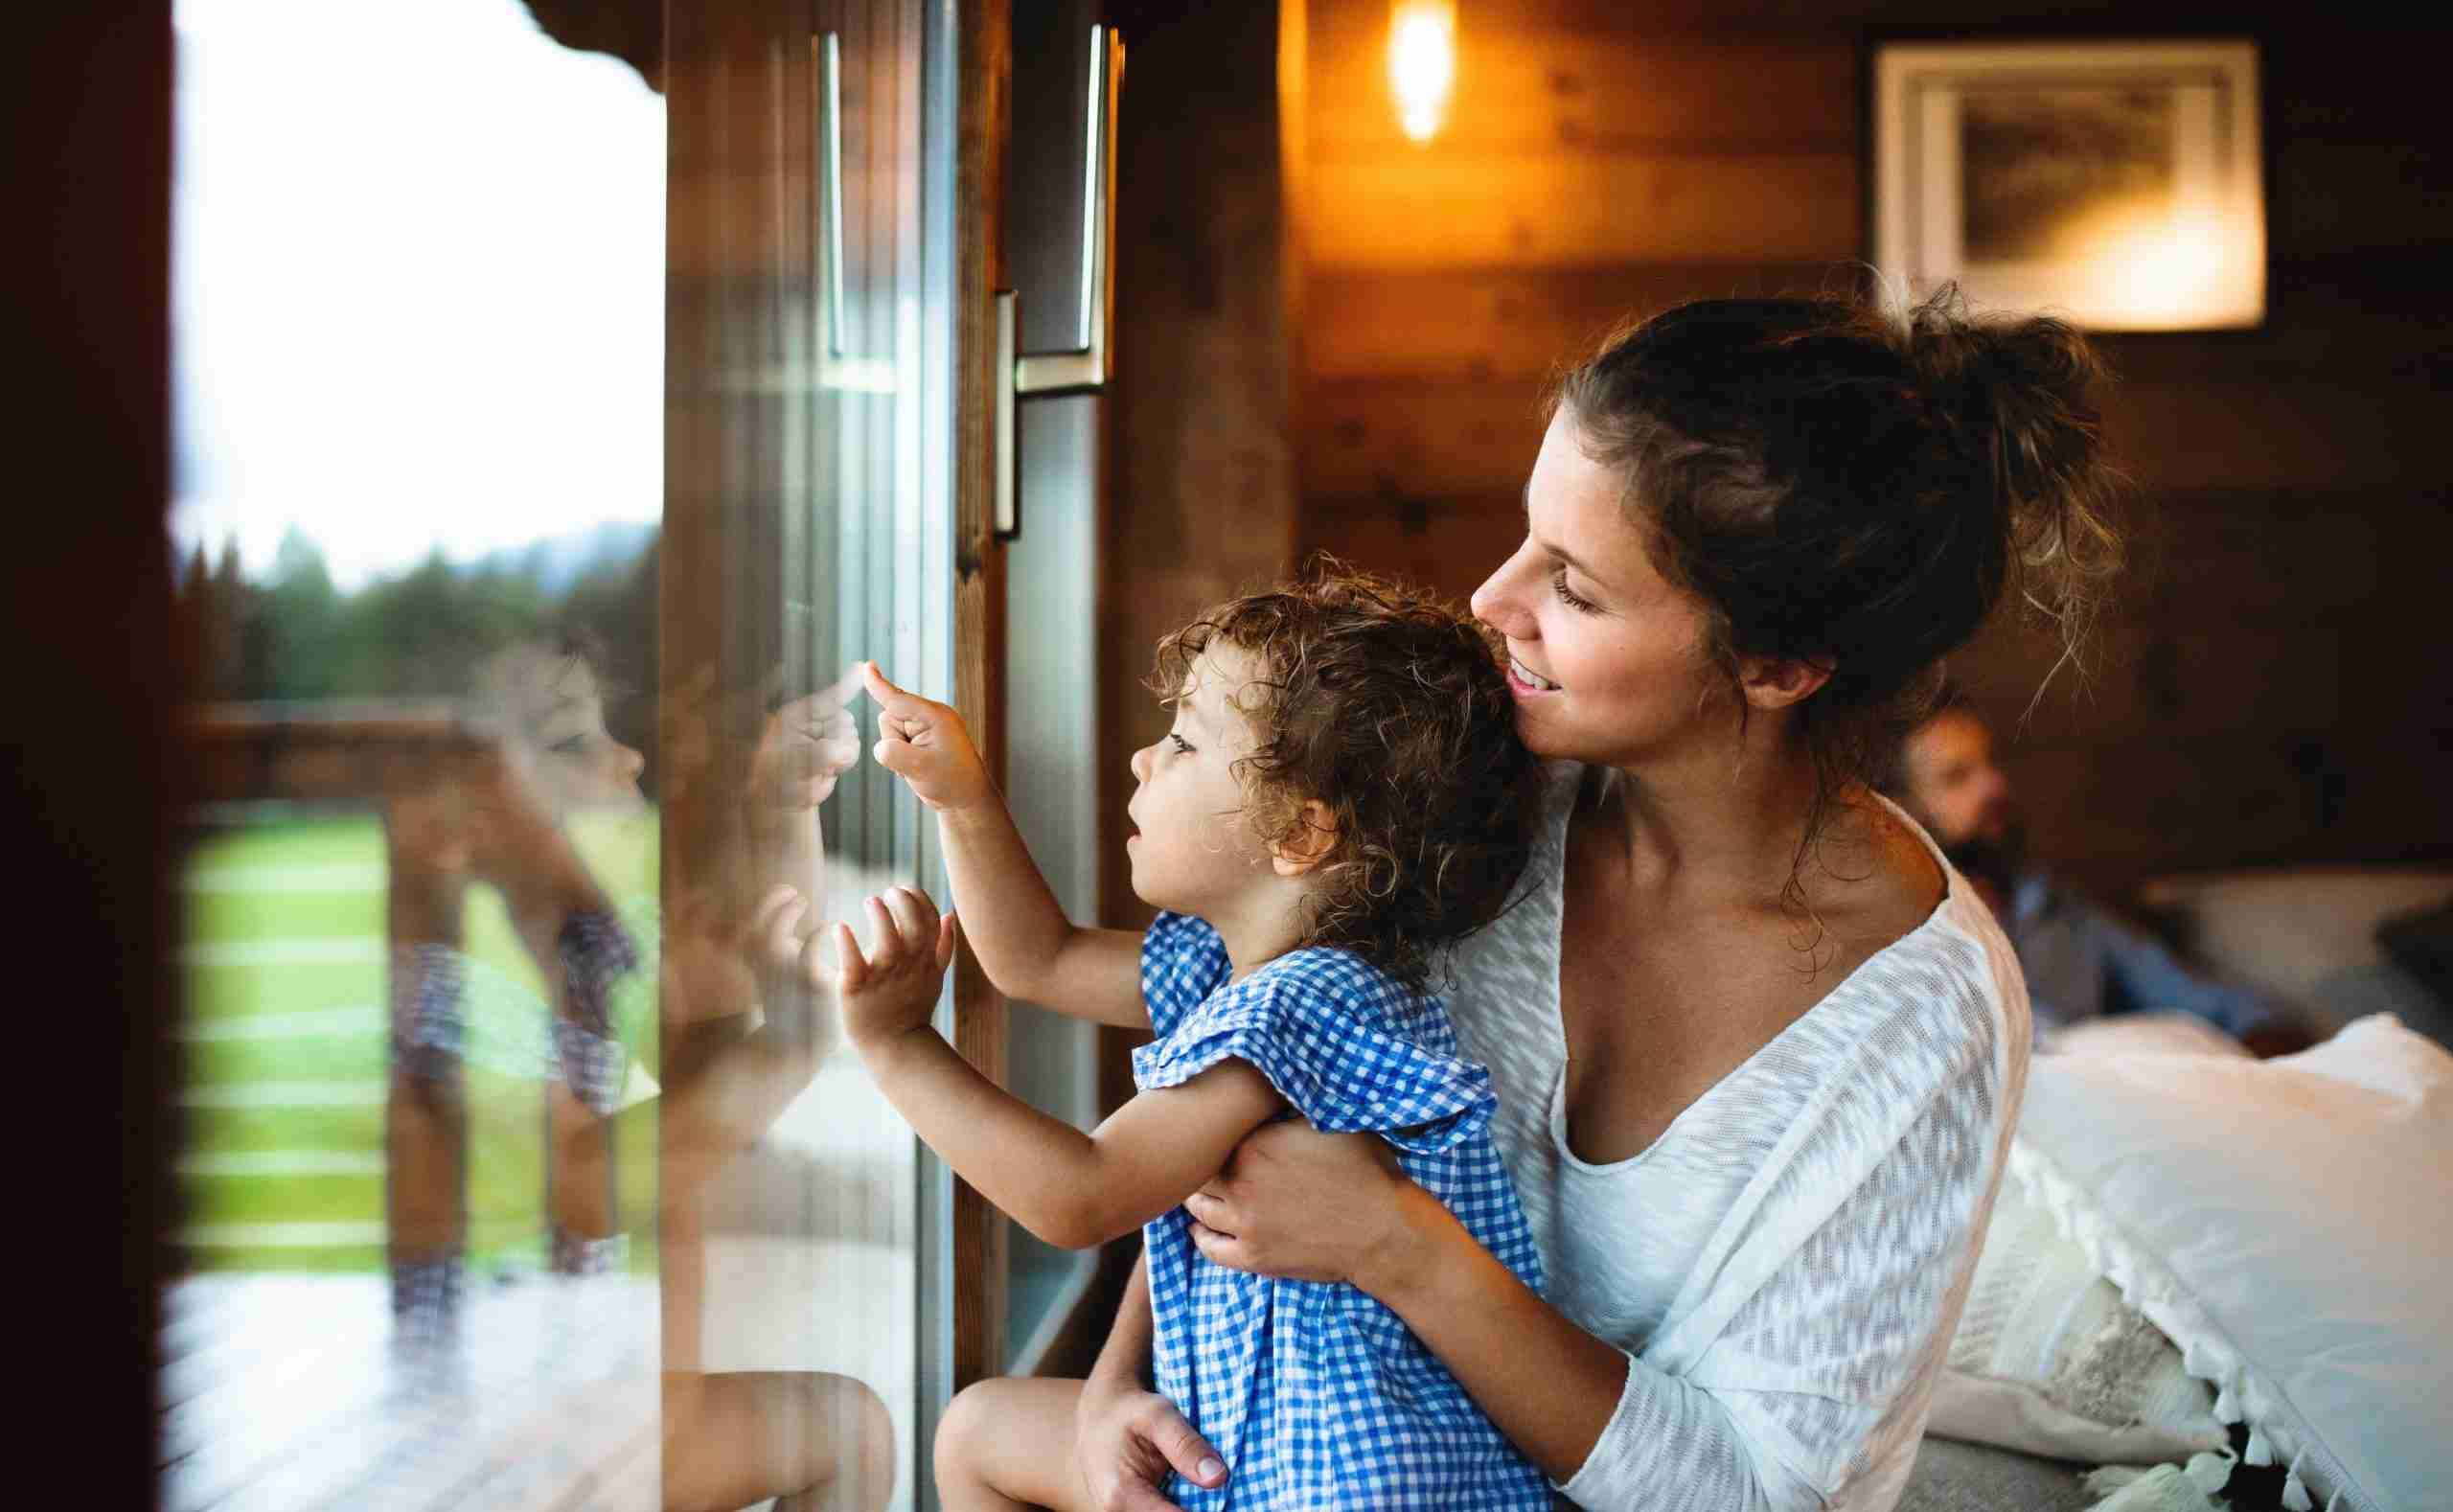 Mother and daughter looking out a window in a rental home